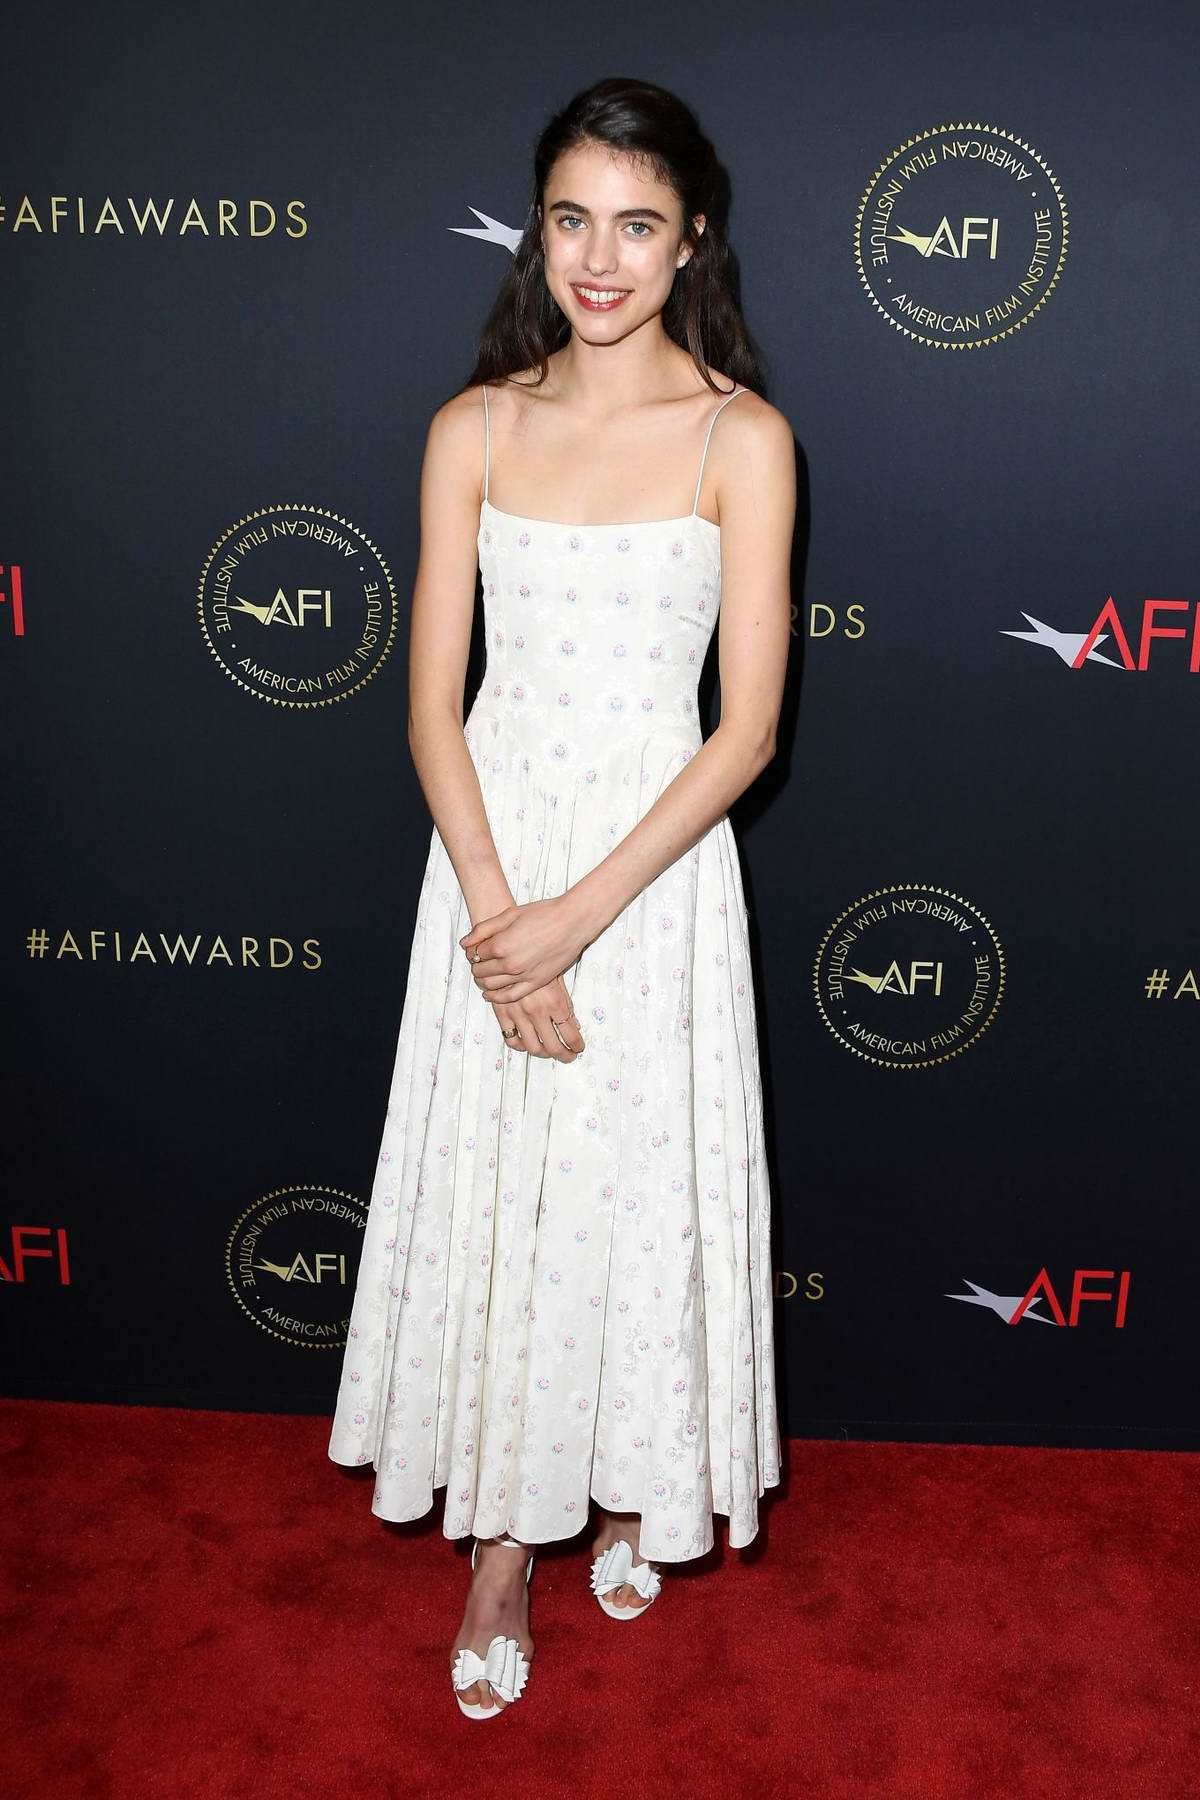 Margaret Qualley attends the 20th Annual AFI Awards at Four Seasons Hotel Los Angeles in Beverly Hills, California